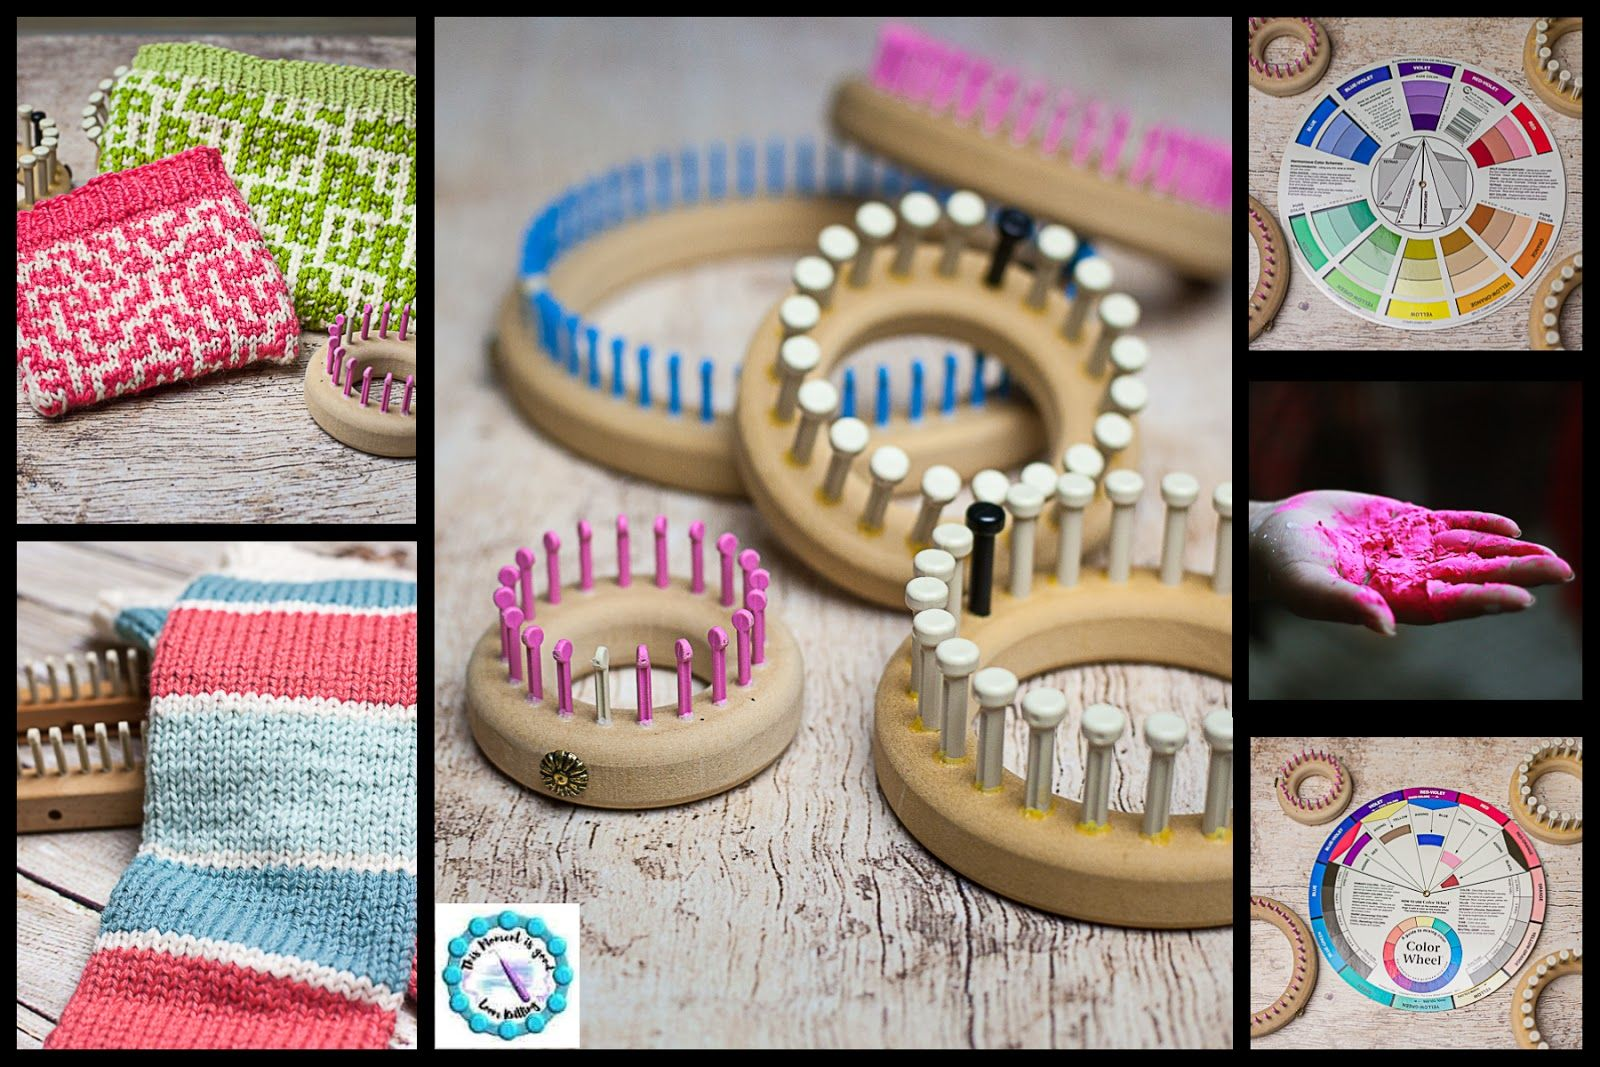 More Knitting Wheel Fashions : Finding color inspiration for loom knitters! knitting